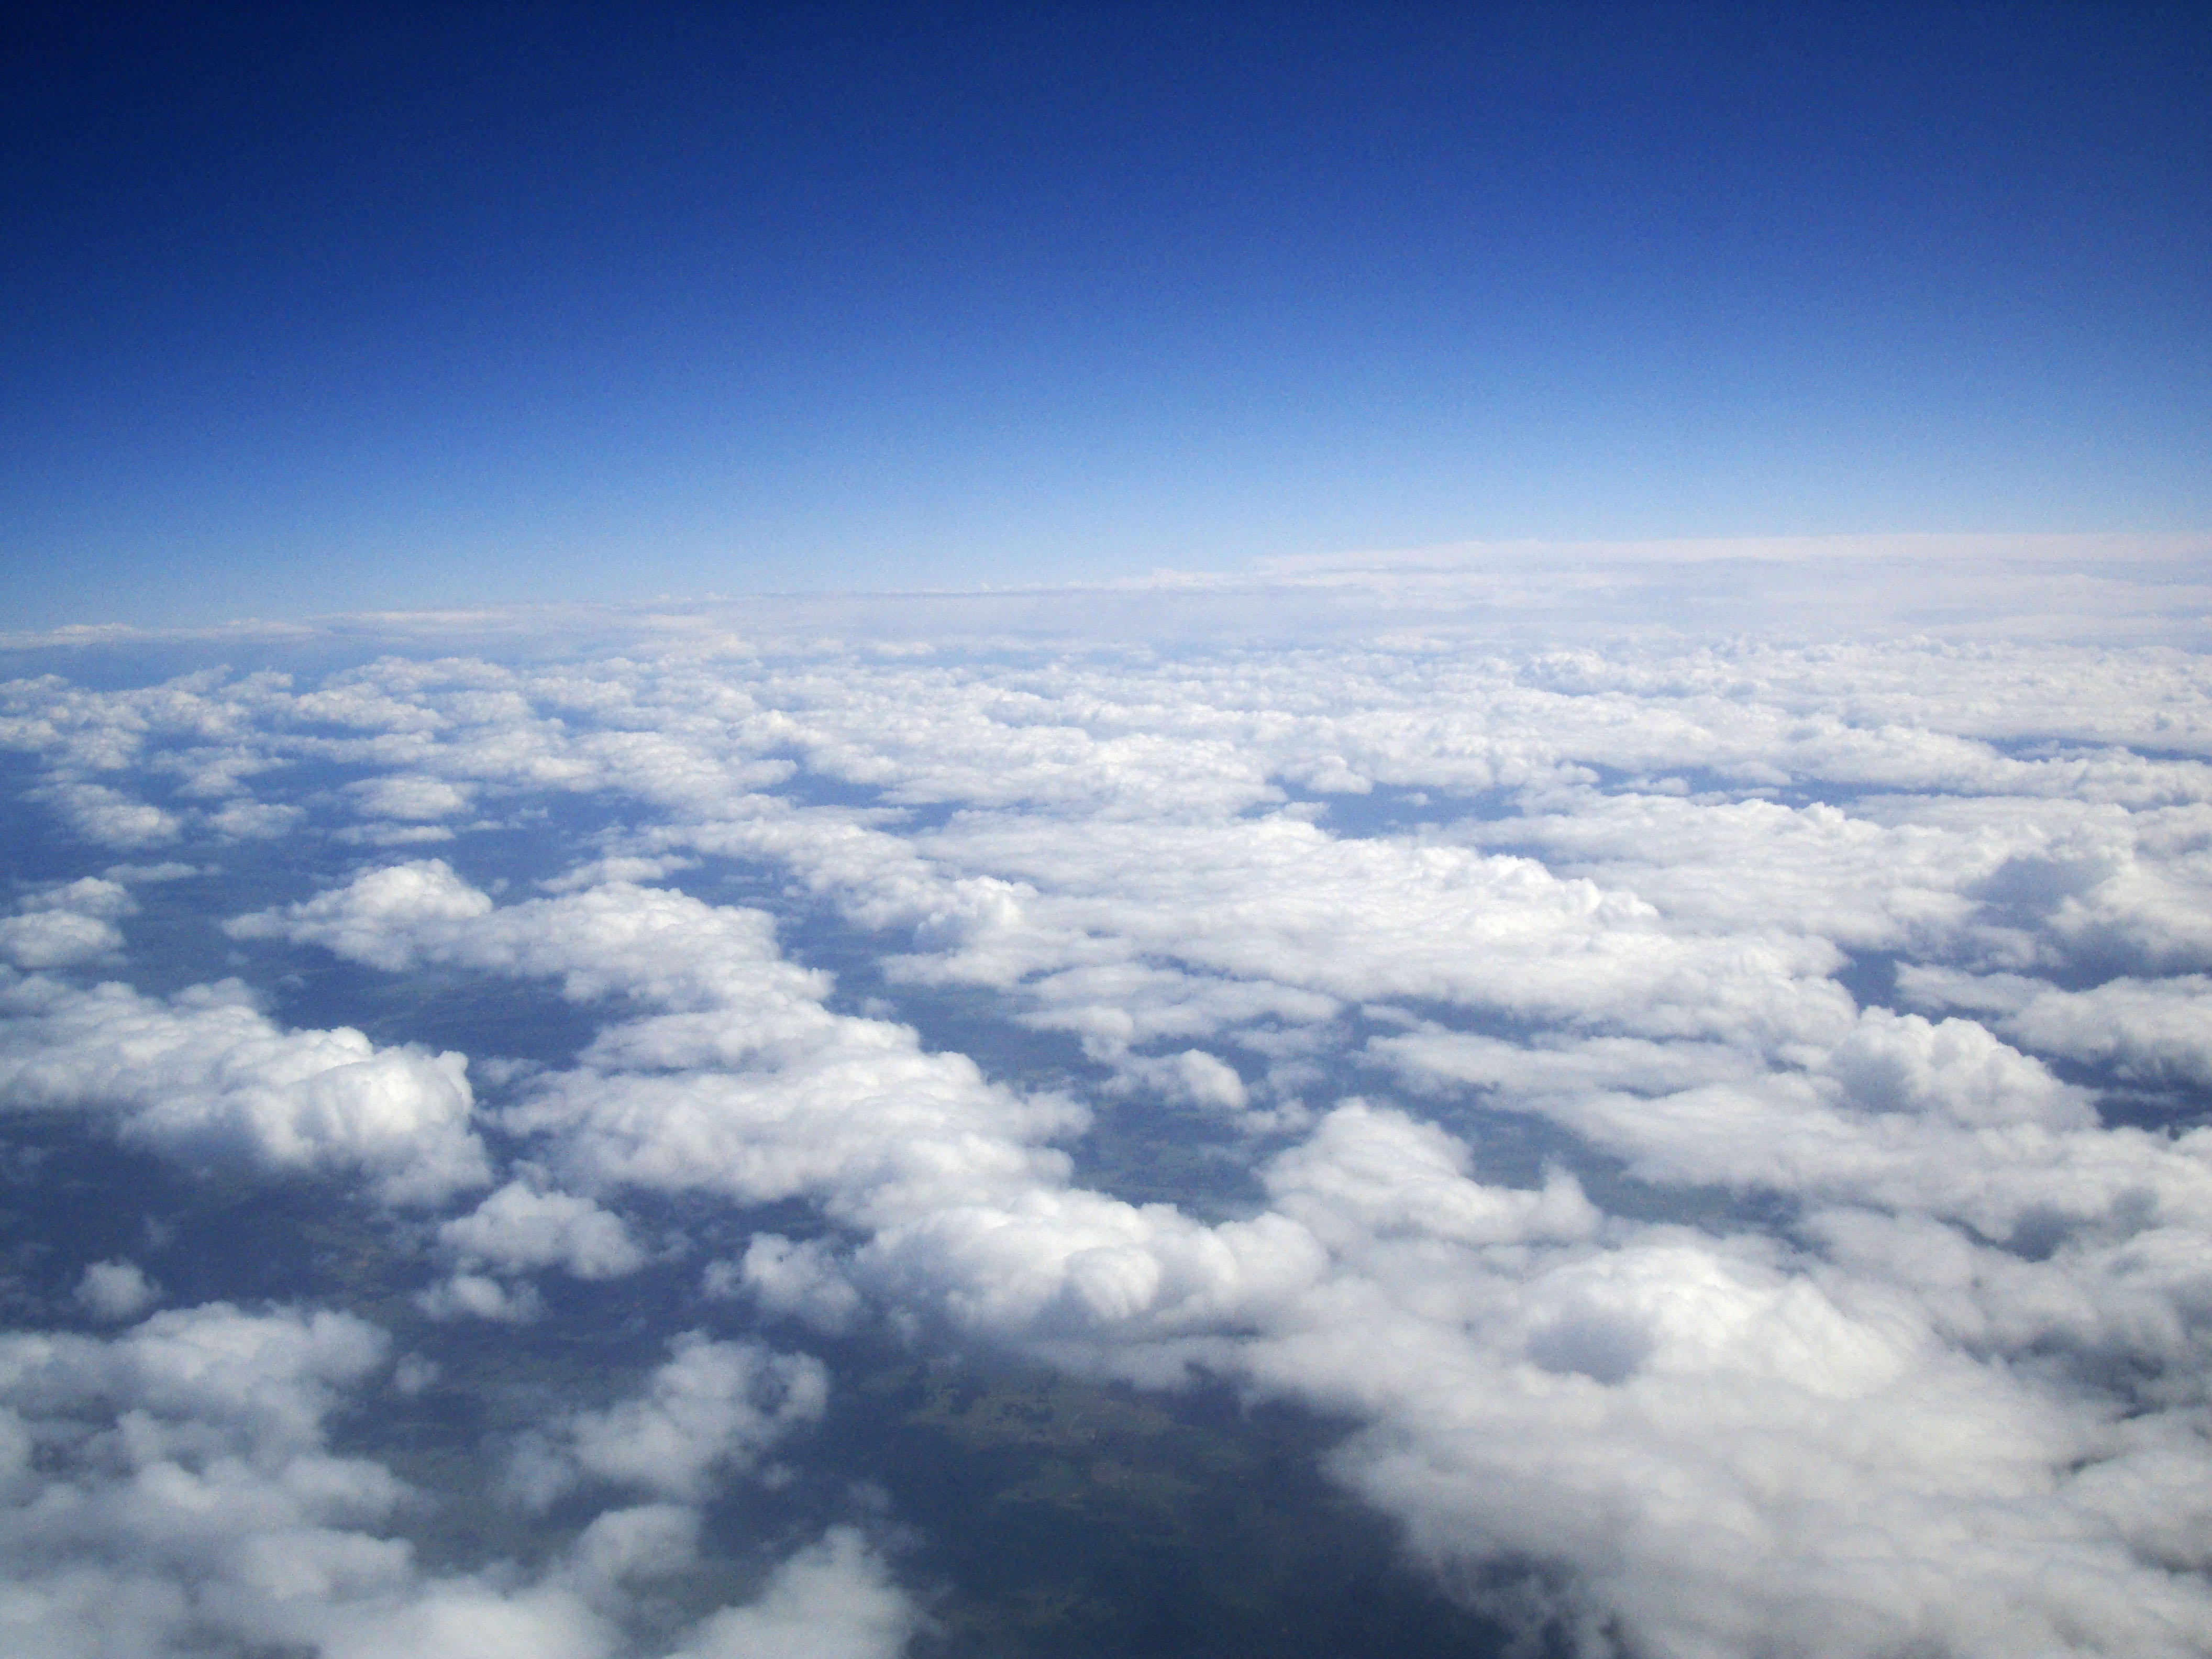 Textures Clouds Formations Sky Storms Weather Phenomena Aerial Views 11